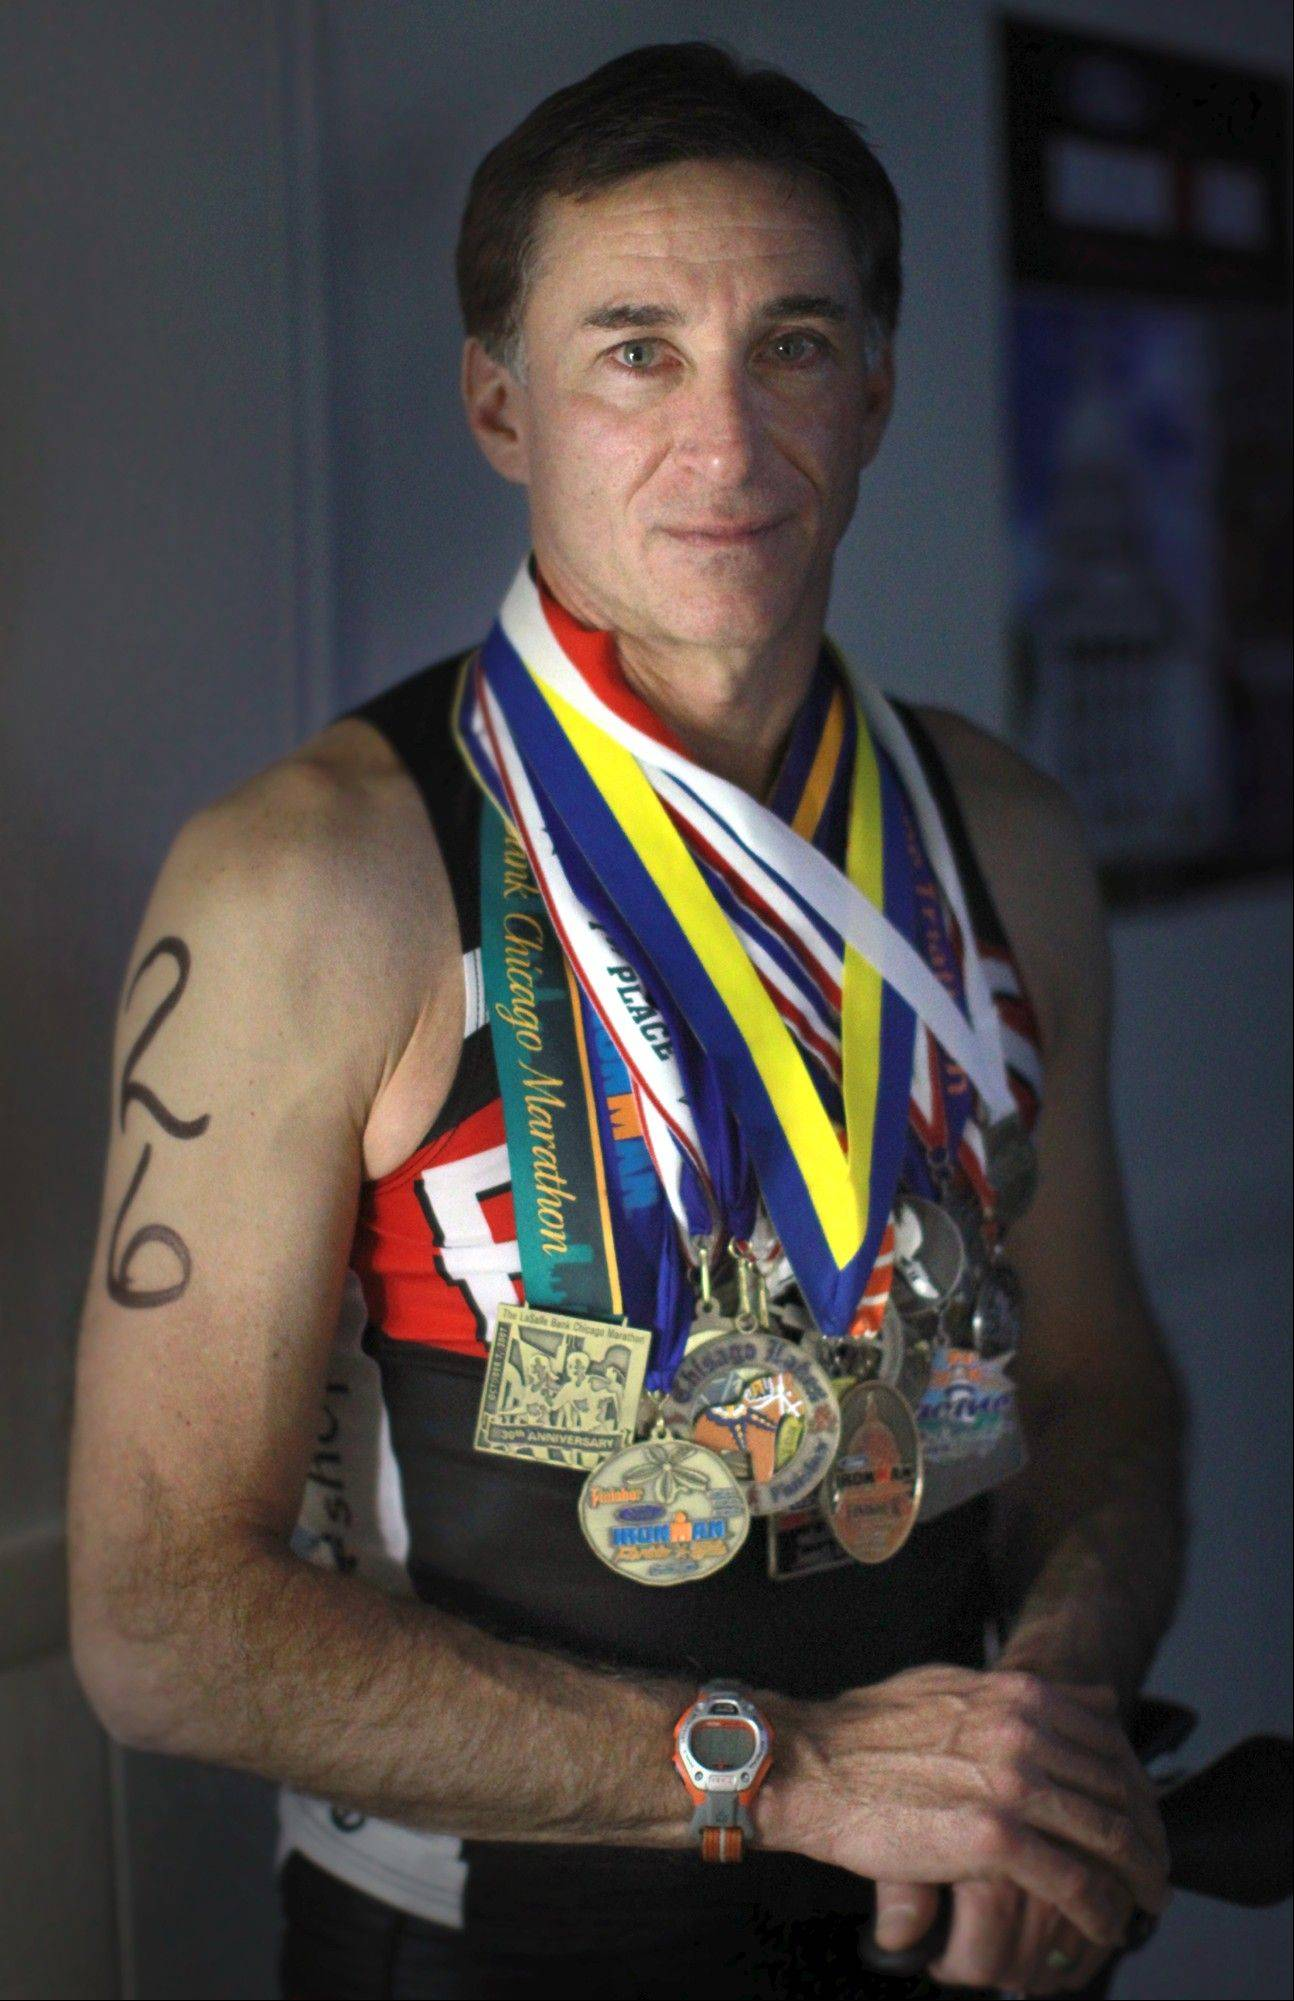 Dave Voss typically doesn�t think of himself as a master triathlete. More of a hard worker. He�s been fairly active all his 51 years � a little soccer, baseball, jogging, biking and chasing after bad guys as a Minneapolis cop.